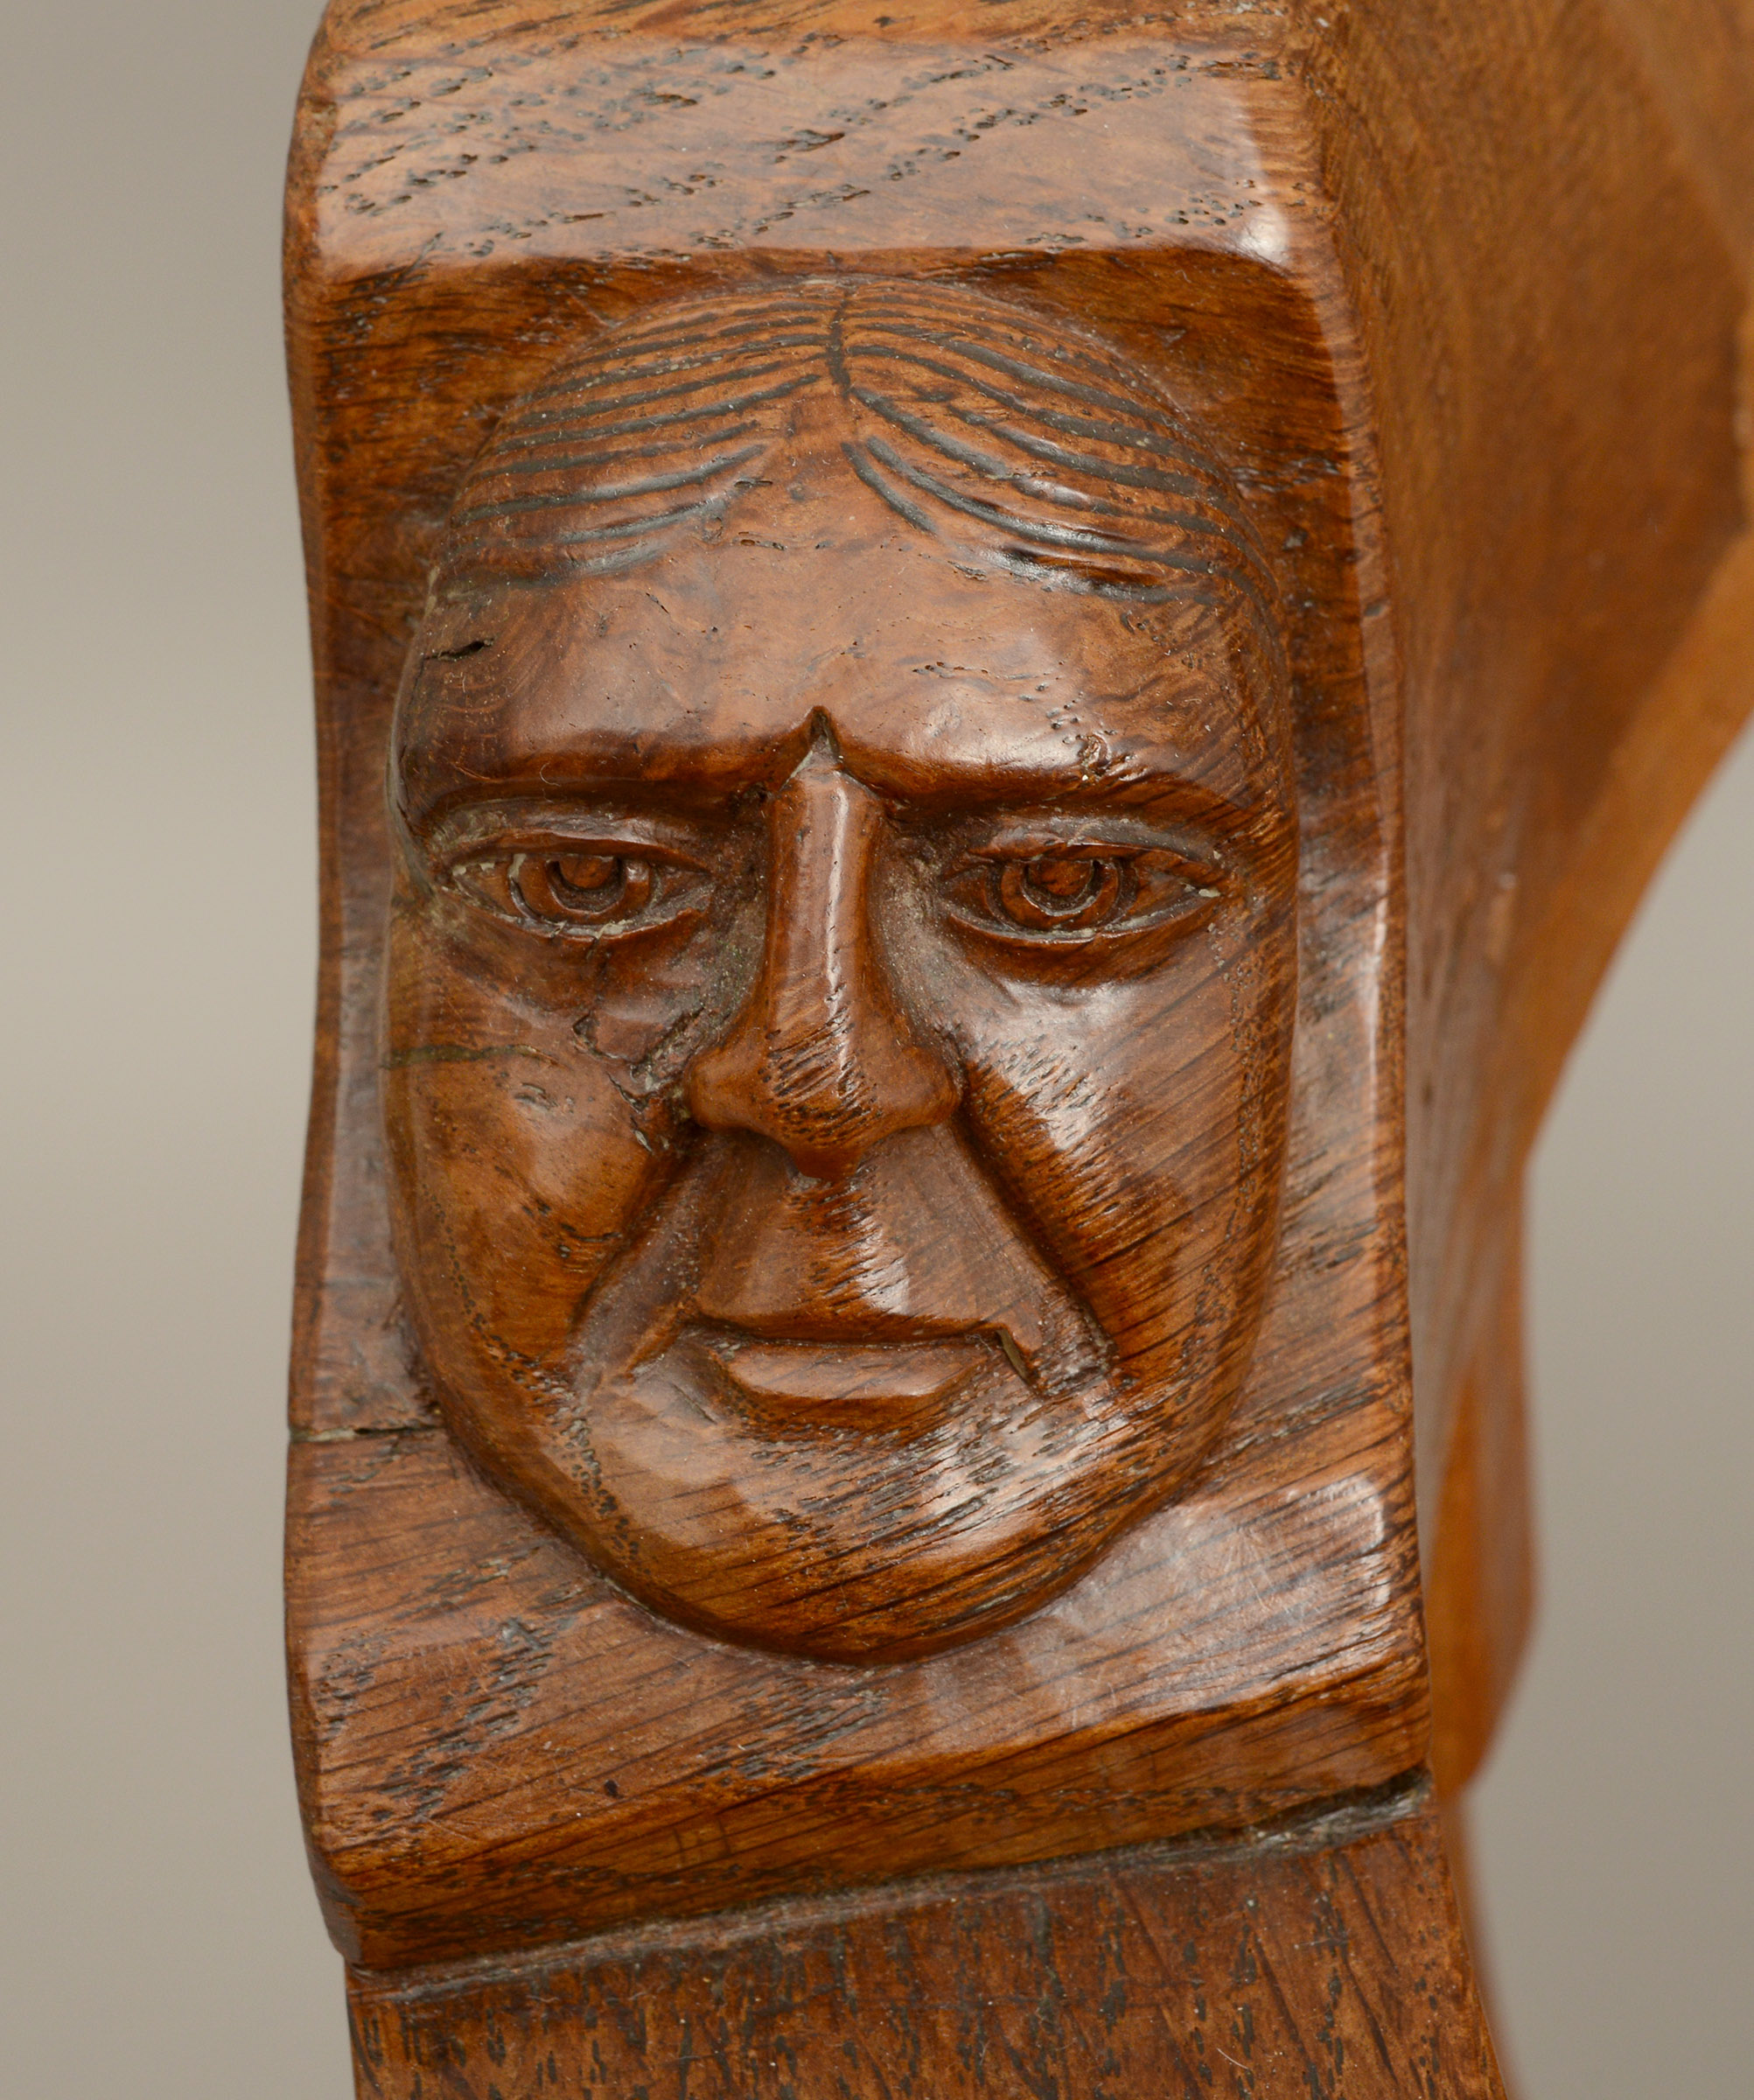 ROBERT THOMPSON OF KILBURN - MOUSEMAN MONKS CHAIR a circa 1920s/1930s oak Monk's armchair with a - Image 5 of 27